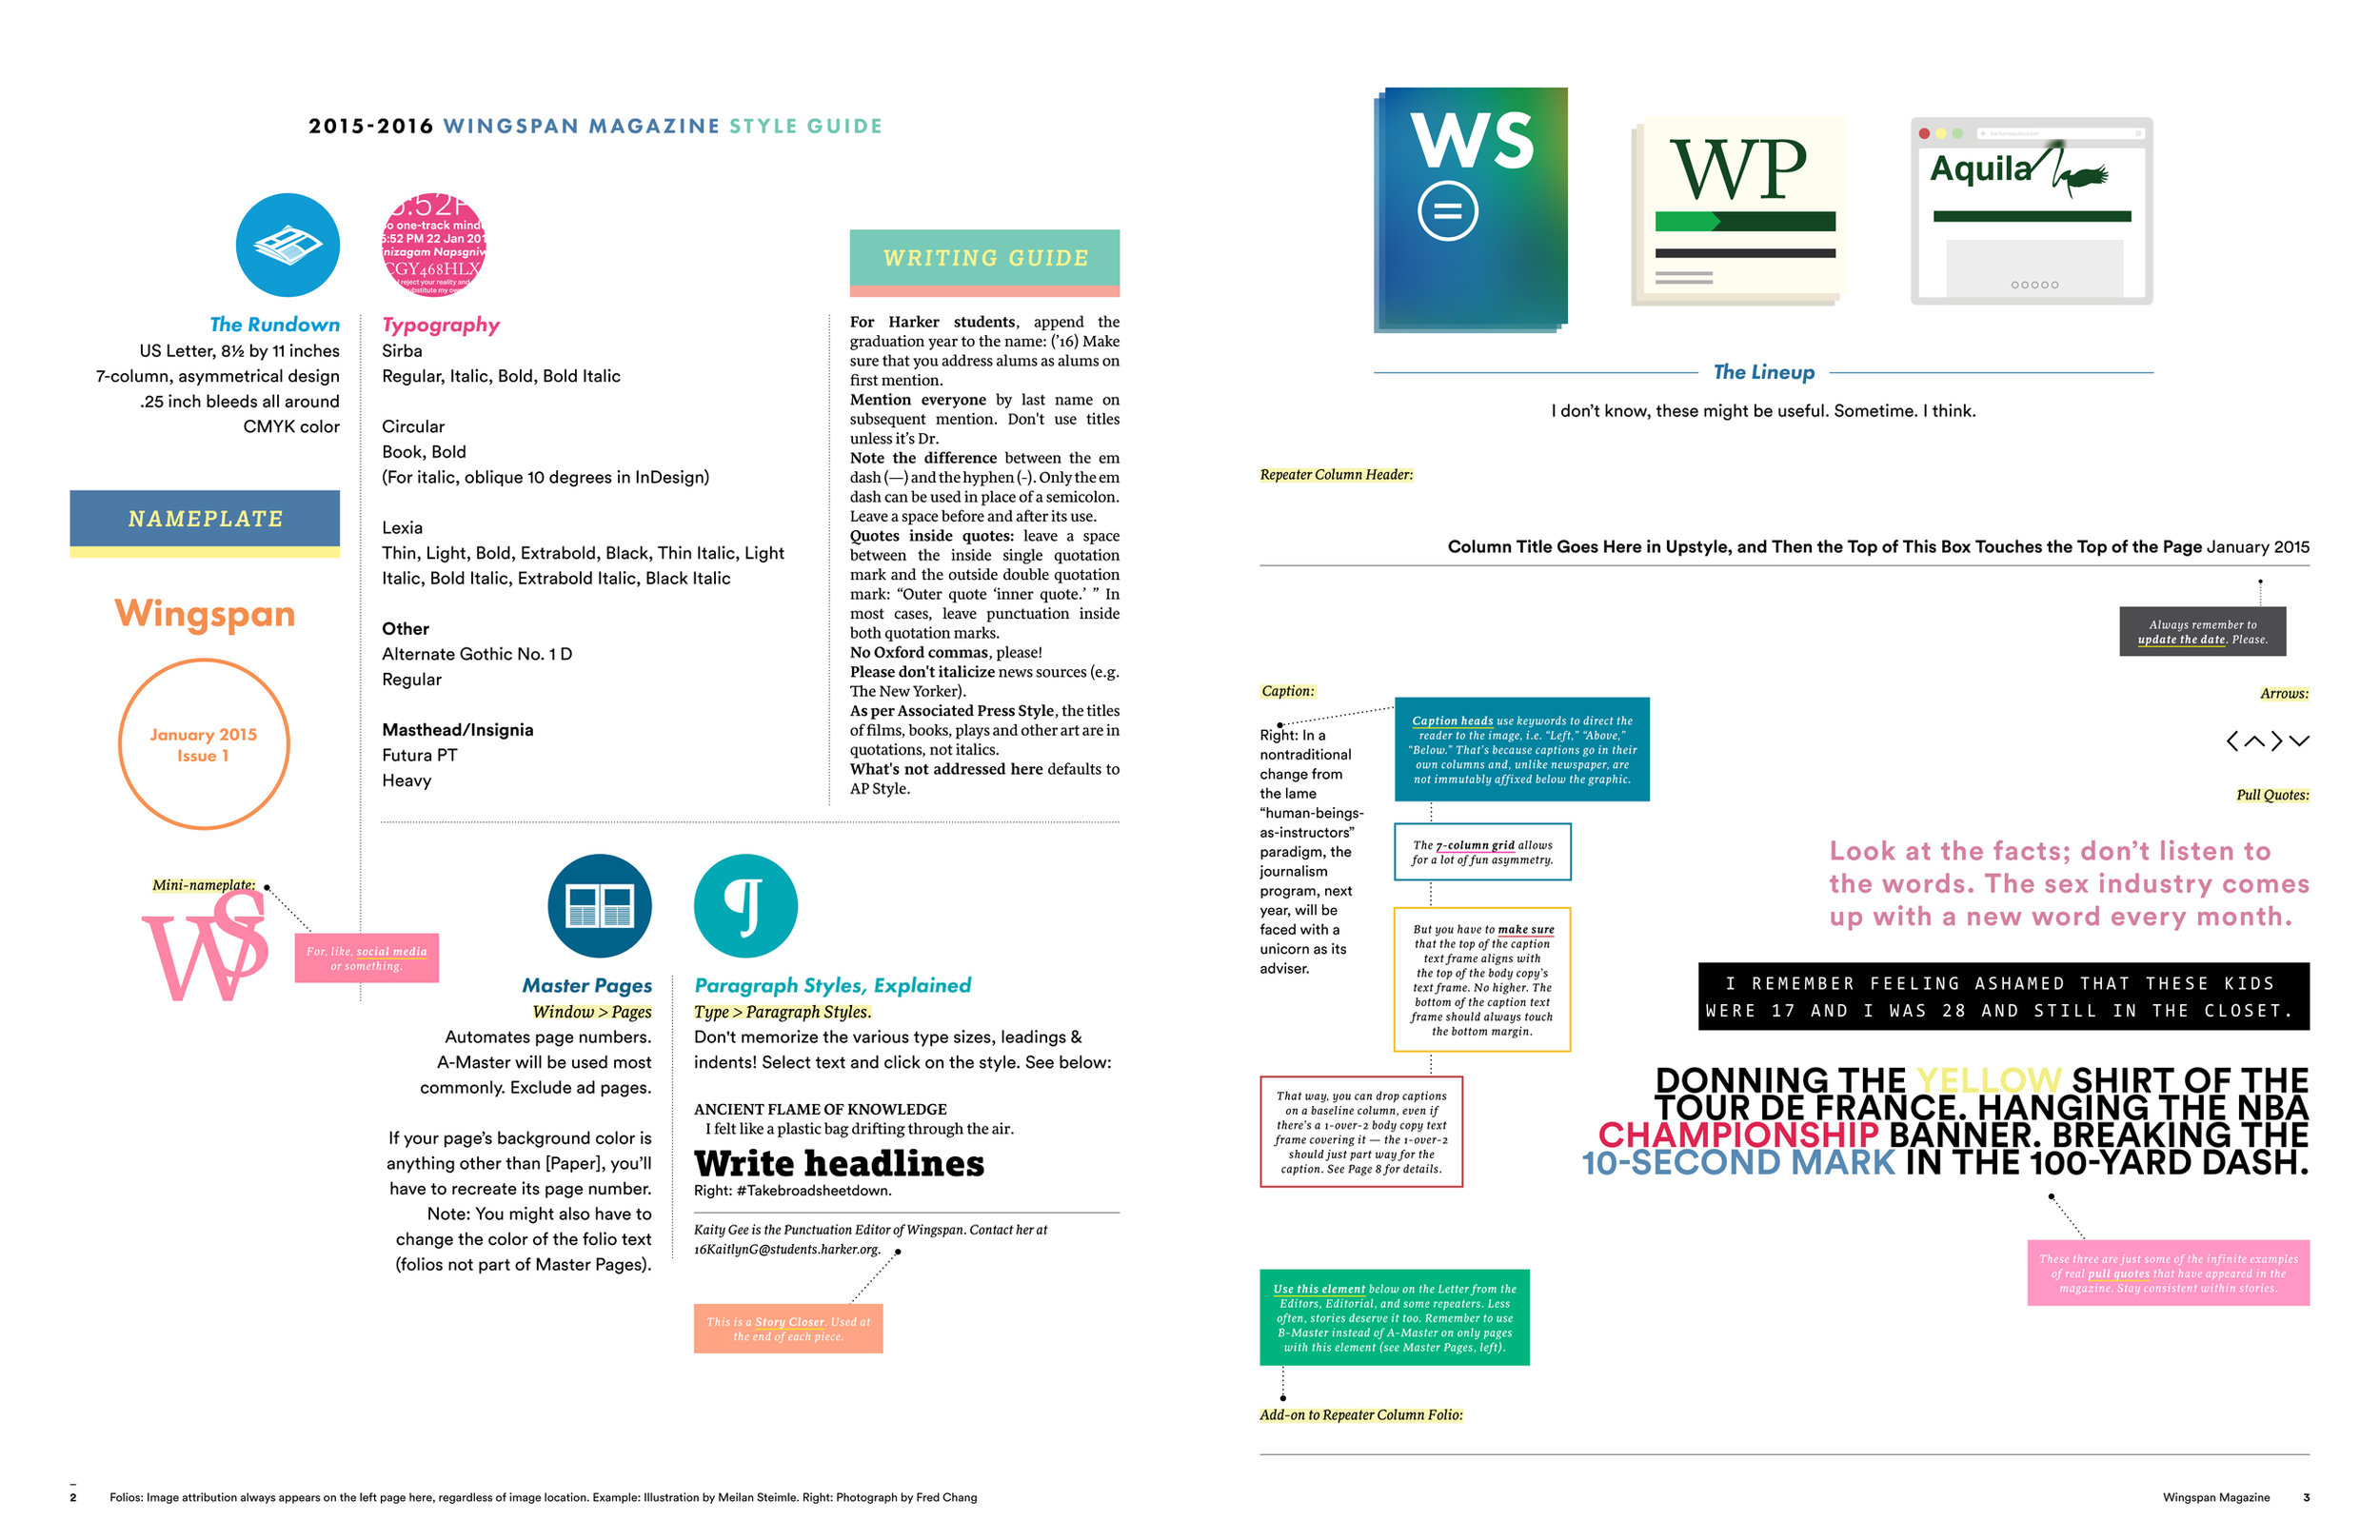 WS-Style-Guide-2.jpg